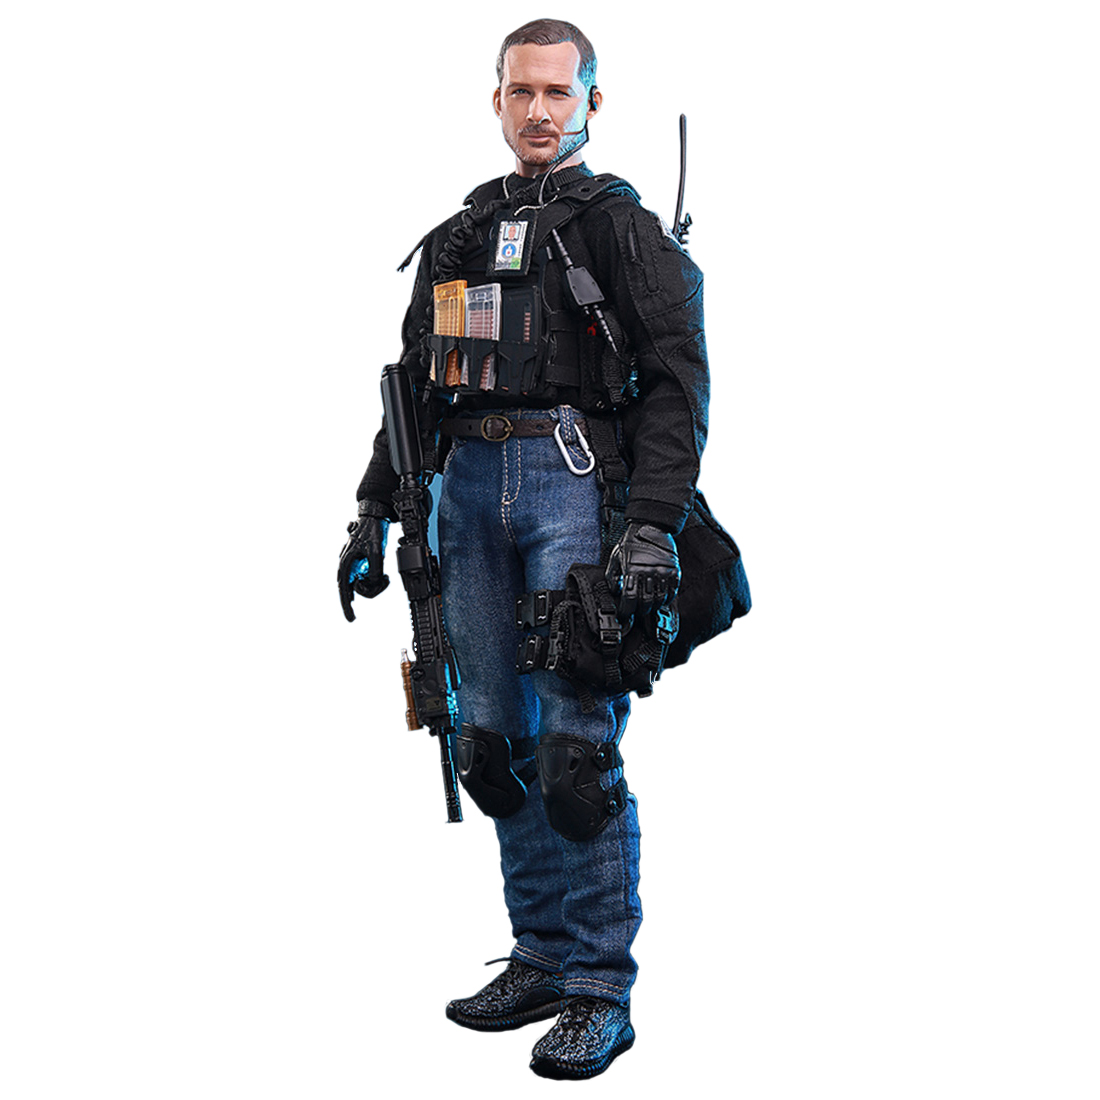 CIA Armed Agents 1/6 Scale Accessory Set For 1/6 12 Action Figure Building Blocks Toys Model Kits Military Soldier Model KidsCIA Armed Agents 1/6 Scale Accessory Set For 1/6 12 Action Figure Building Blocks Toys Model Kits Military Soldier Model Kids